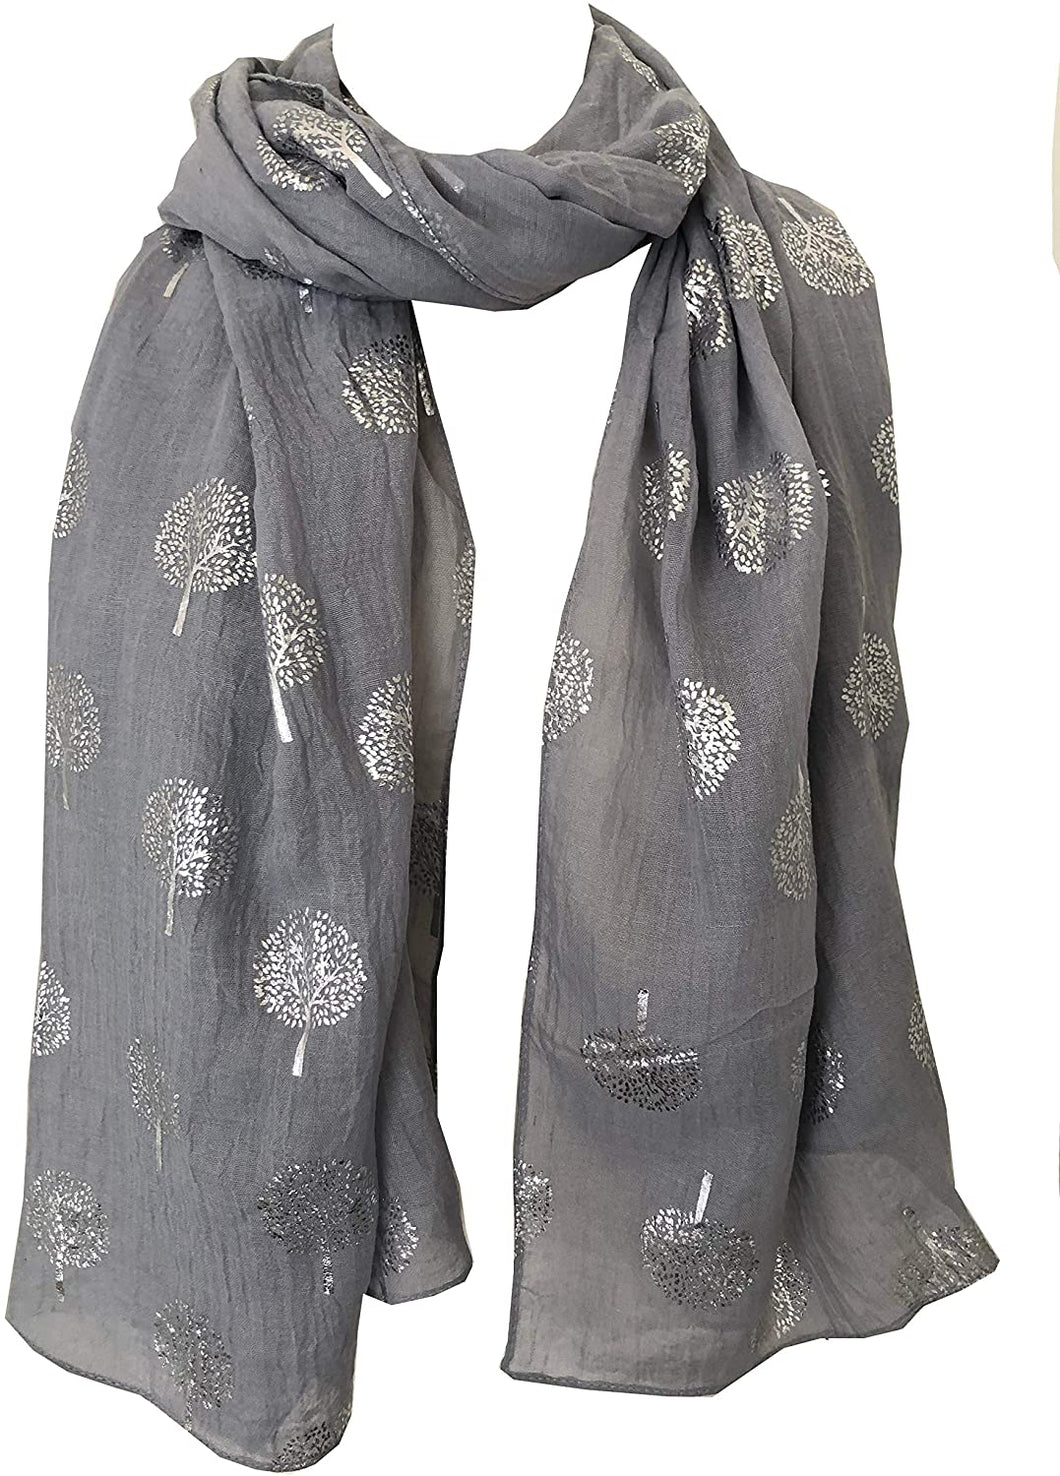 Pamper Yourself Now Light Grey with Silver Foiled Mulberry Tree Design Ladies Scarf/wrap. Great Present for Mum, Sister, Girlfriend or Wife.